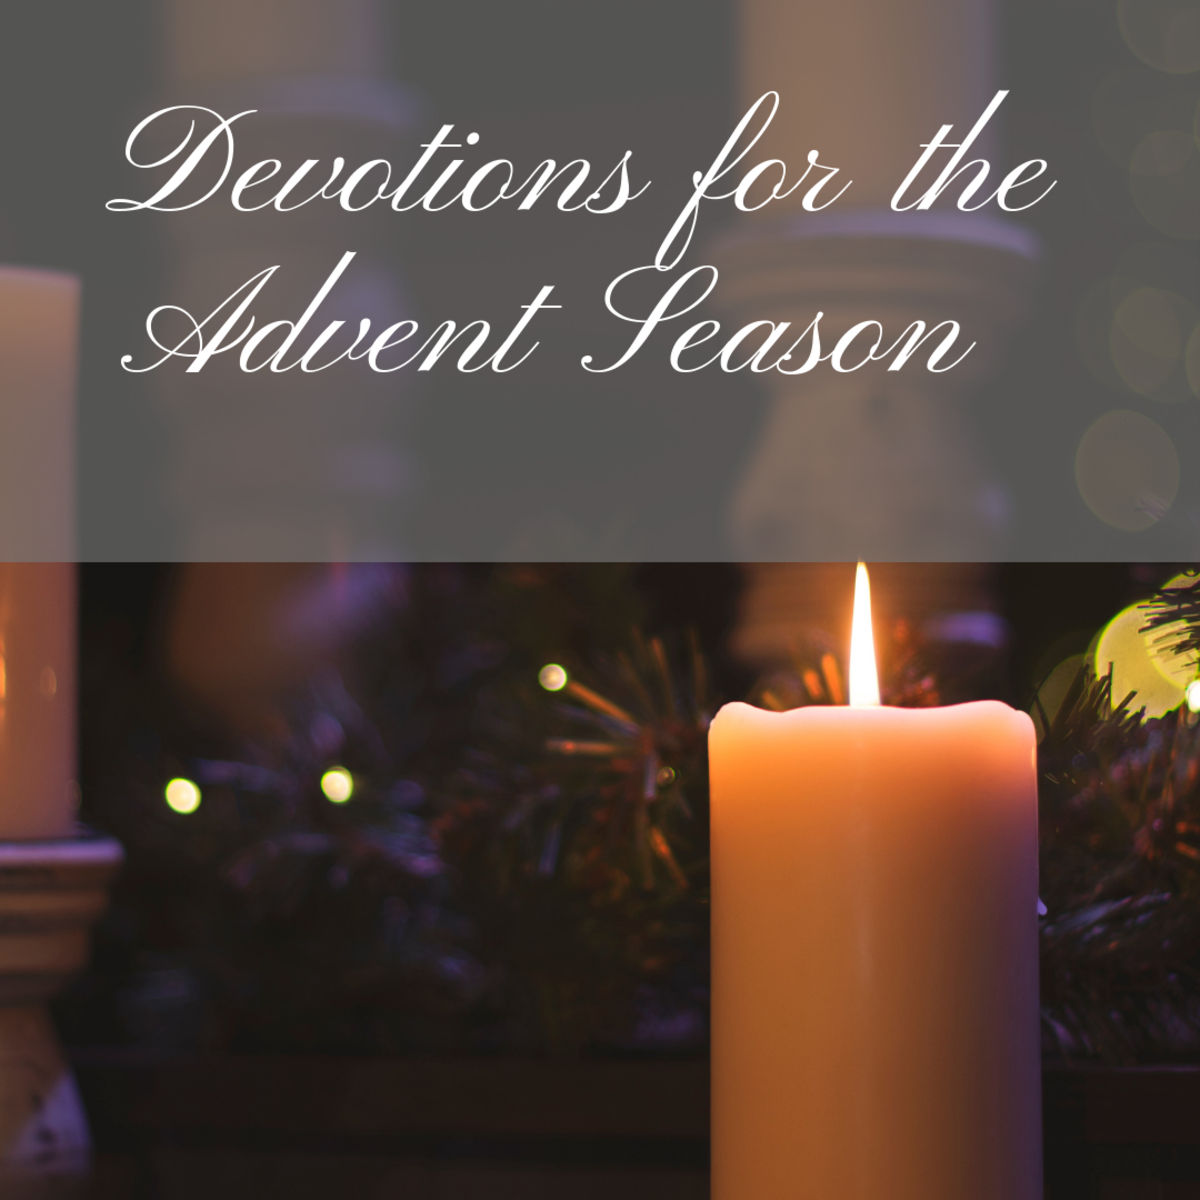 Devotions for the Advent Season